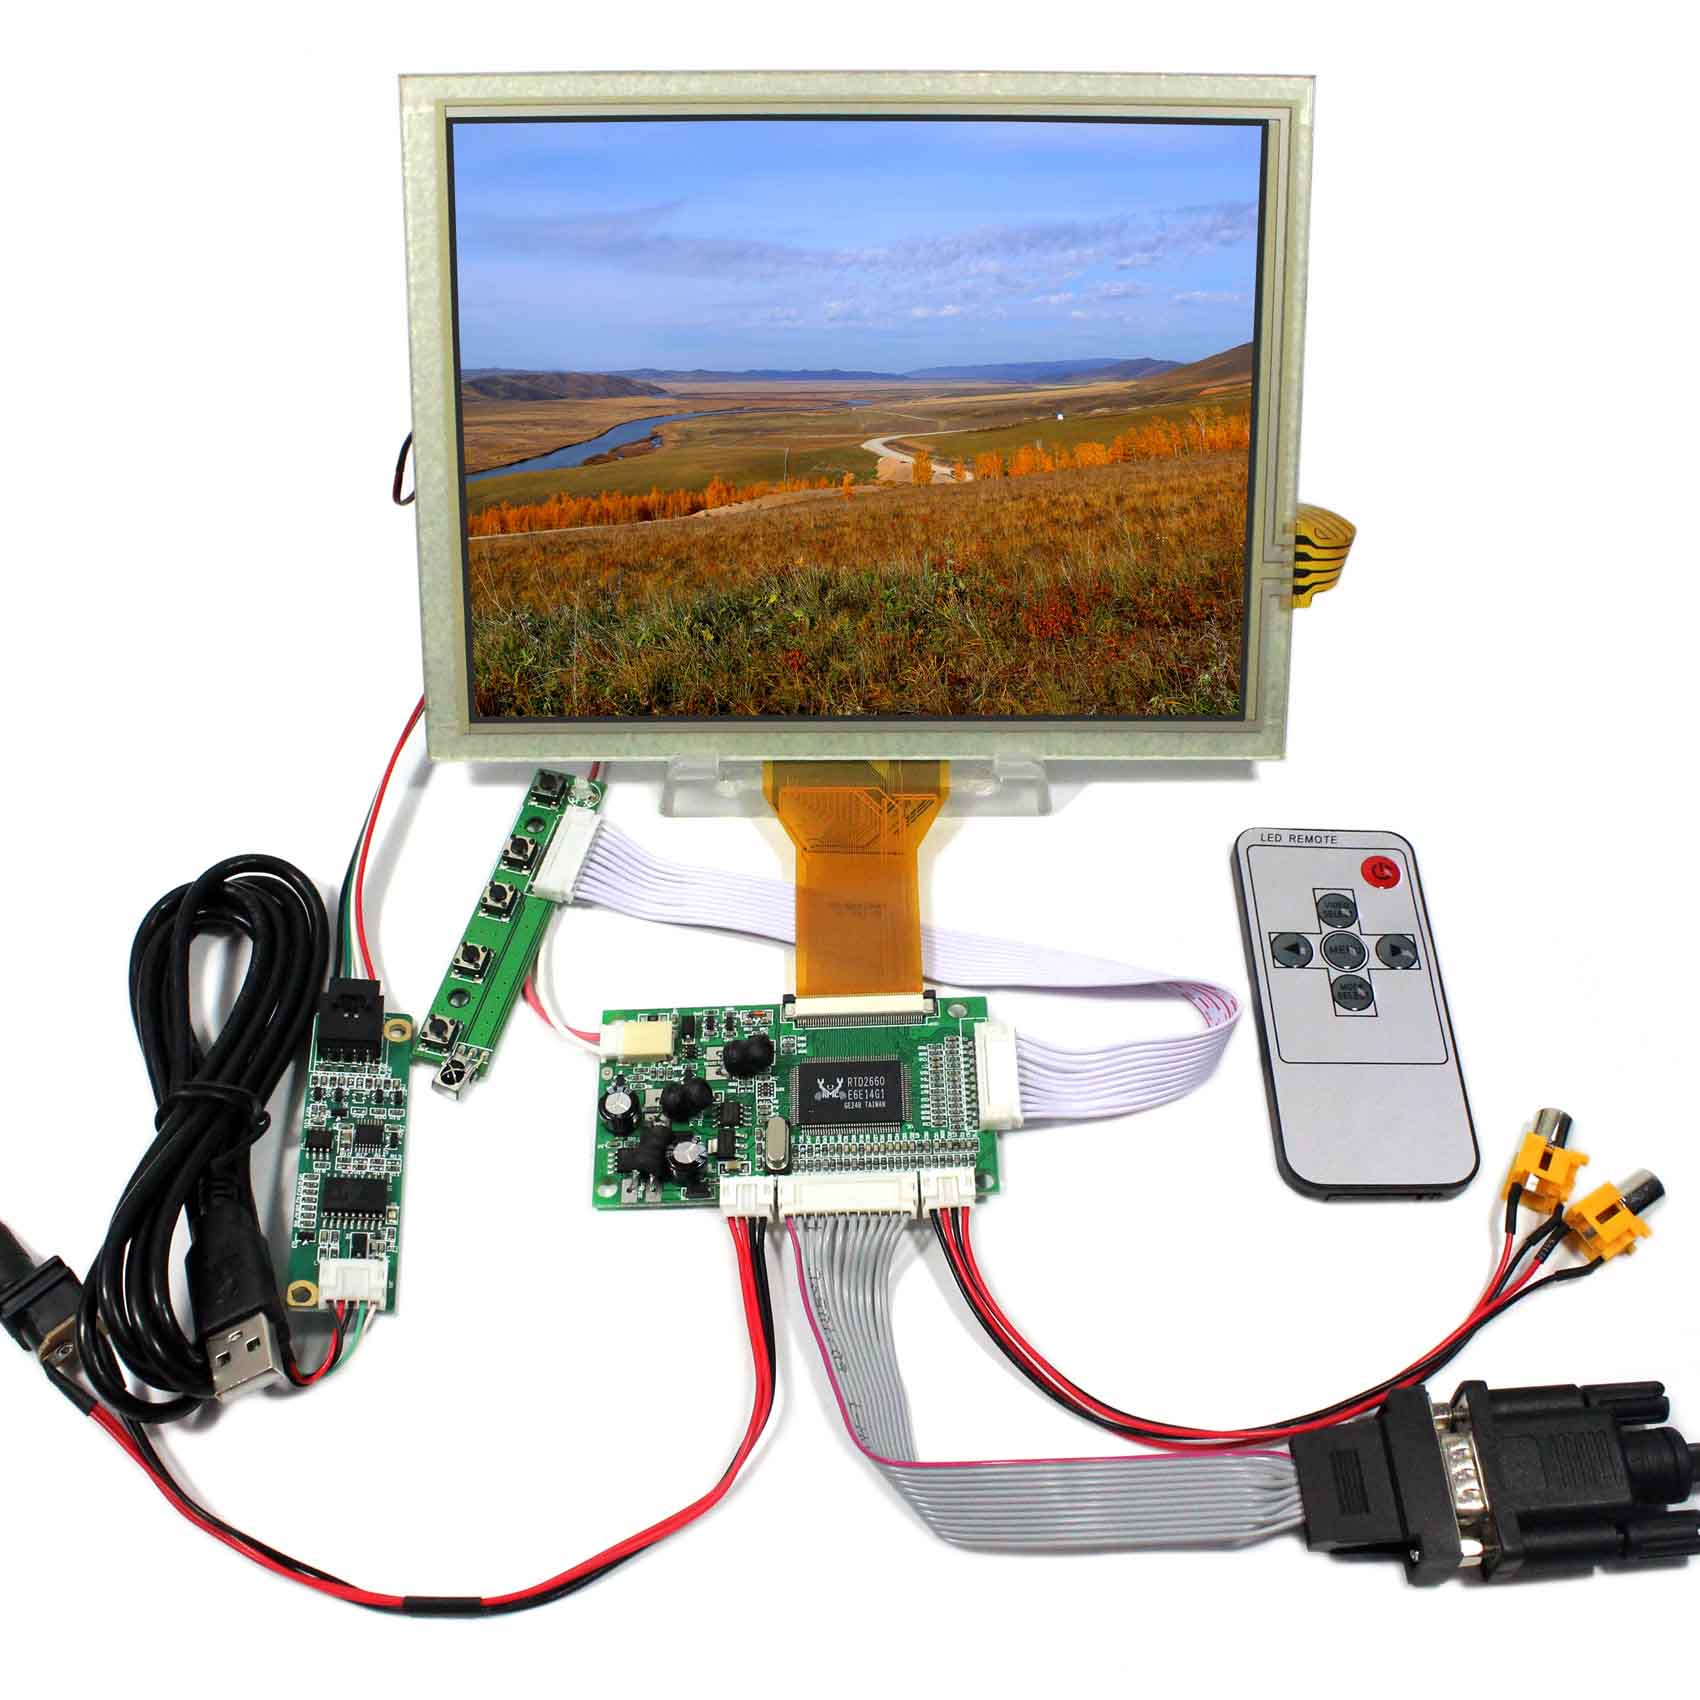 8inch 800x480 tft lcd display with driver board Remote8inch 800x480 tft lcd display with driver board Remote